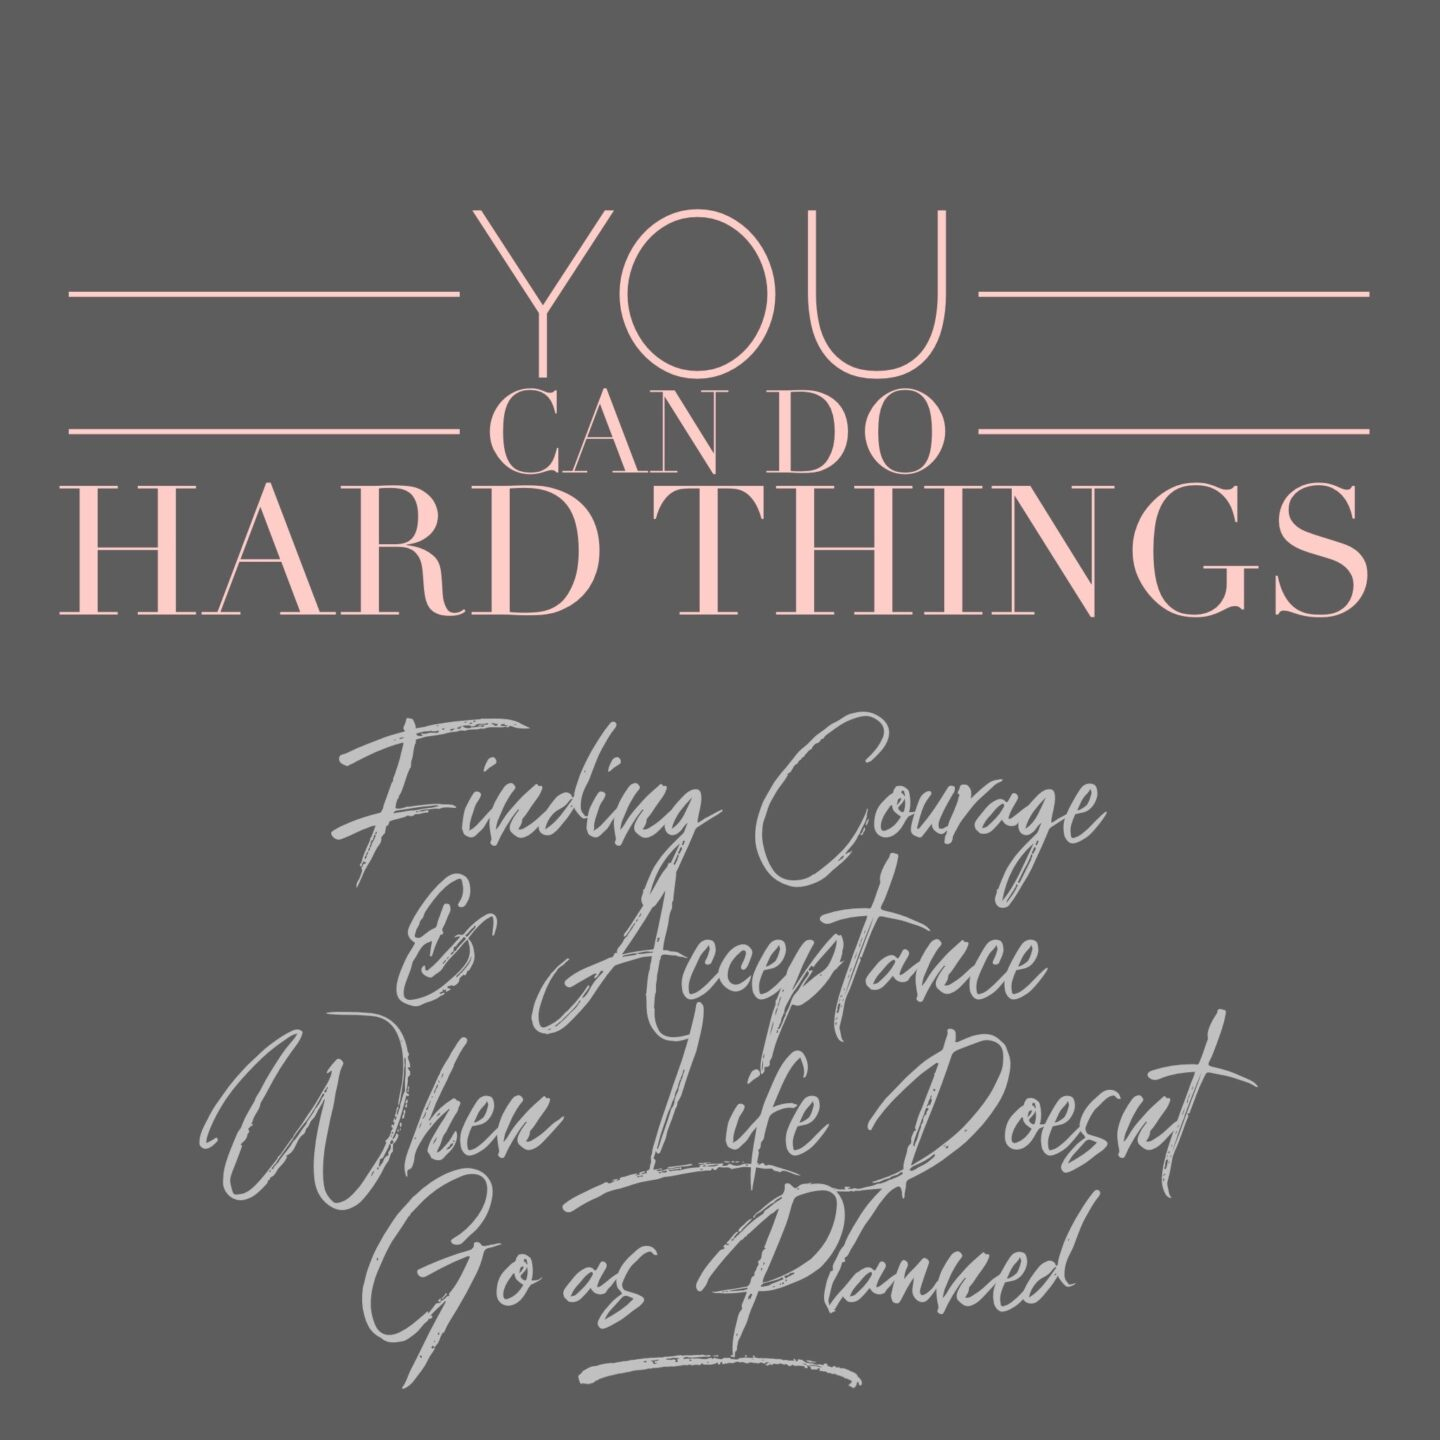 You Can Do Hard Things – Finding Courage & Acceptance When Life Doesn't Go as Planned